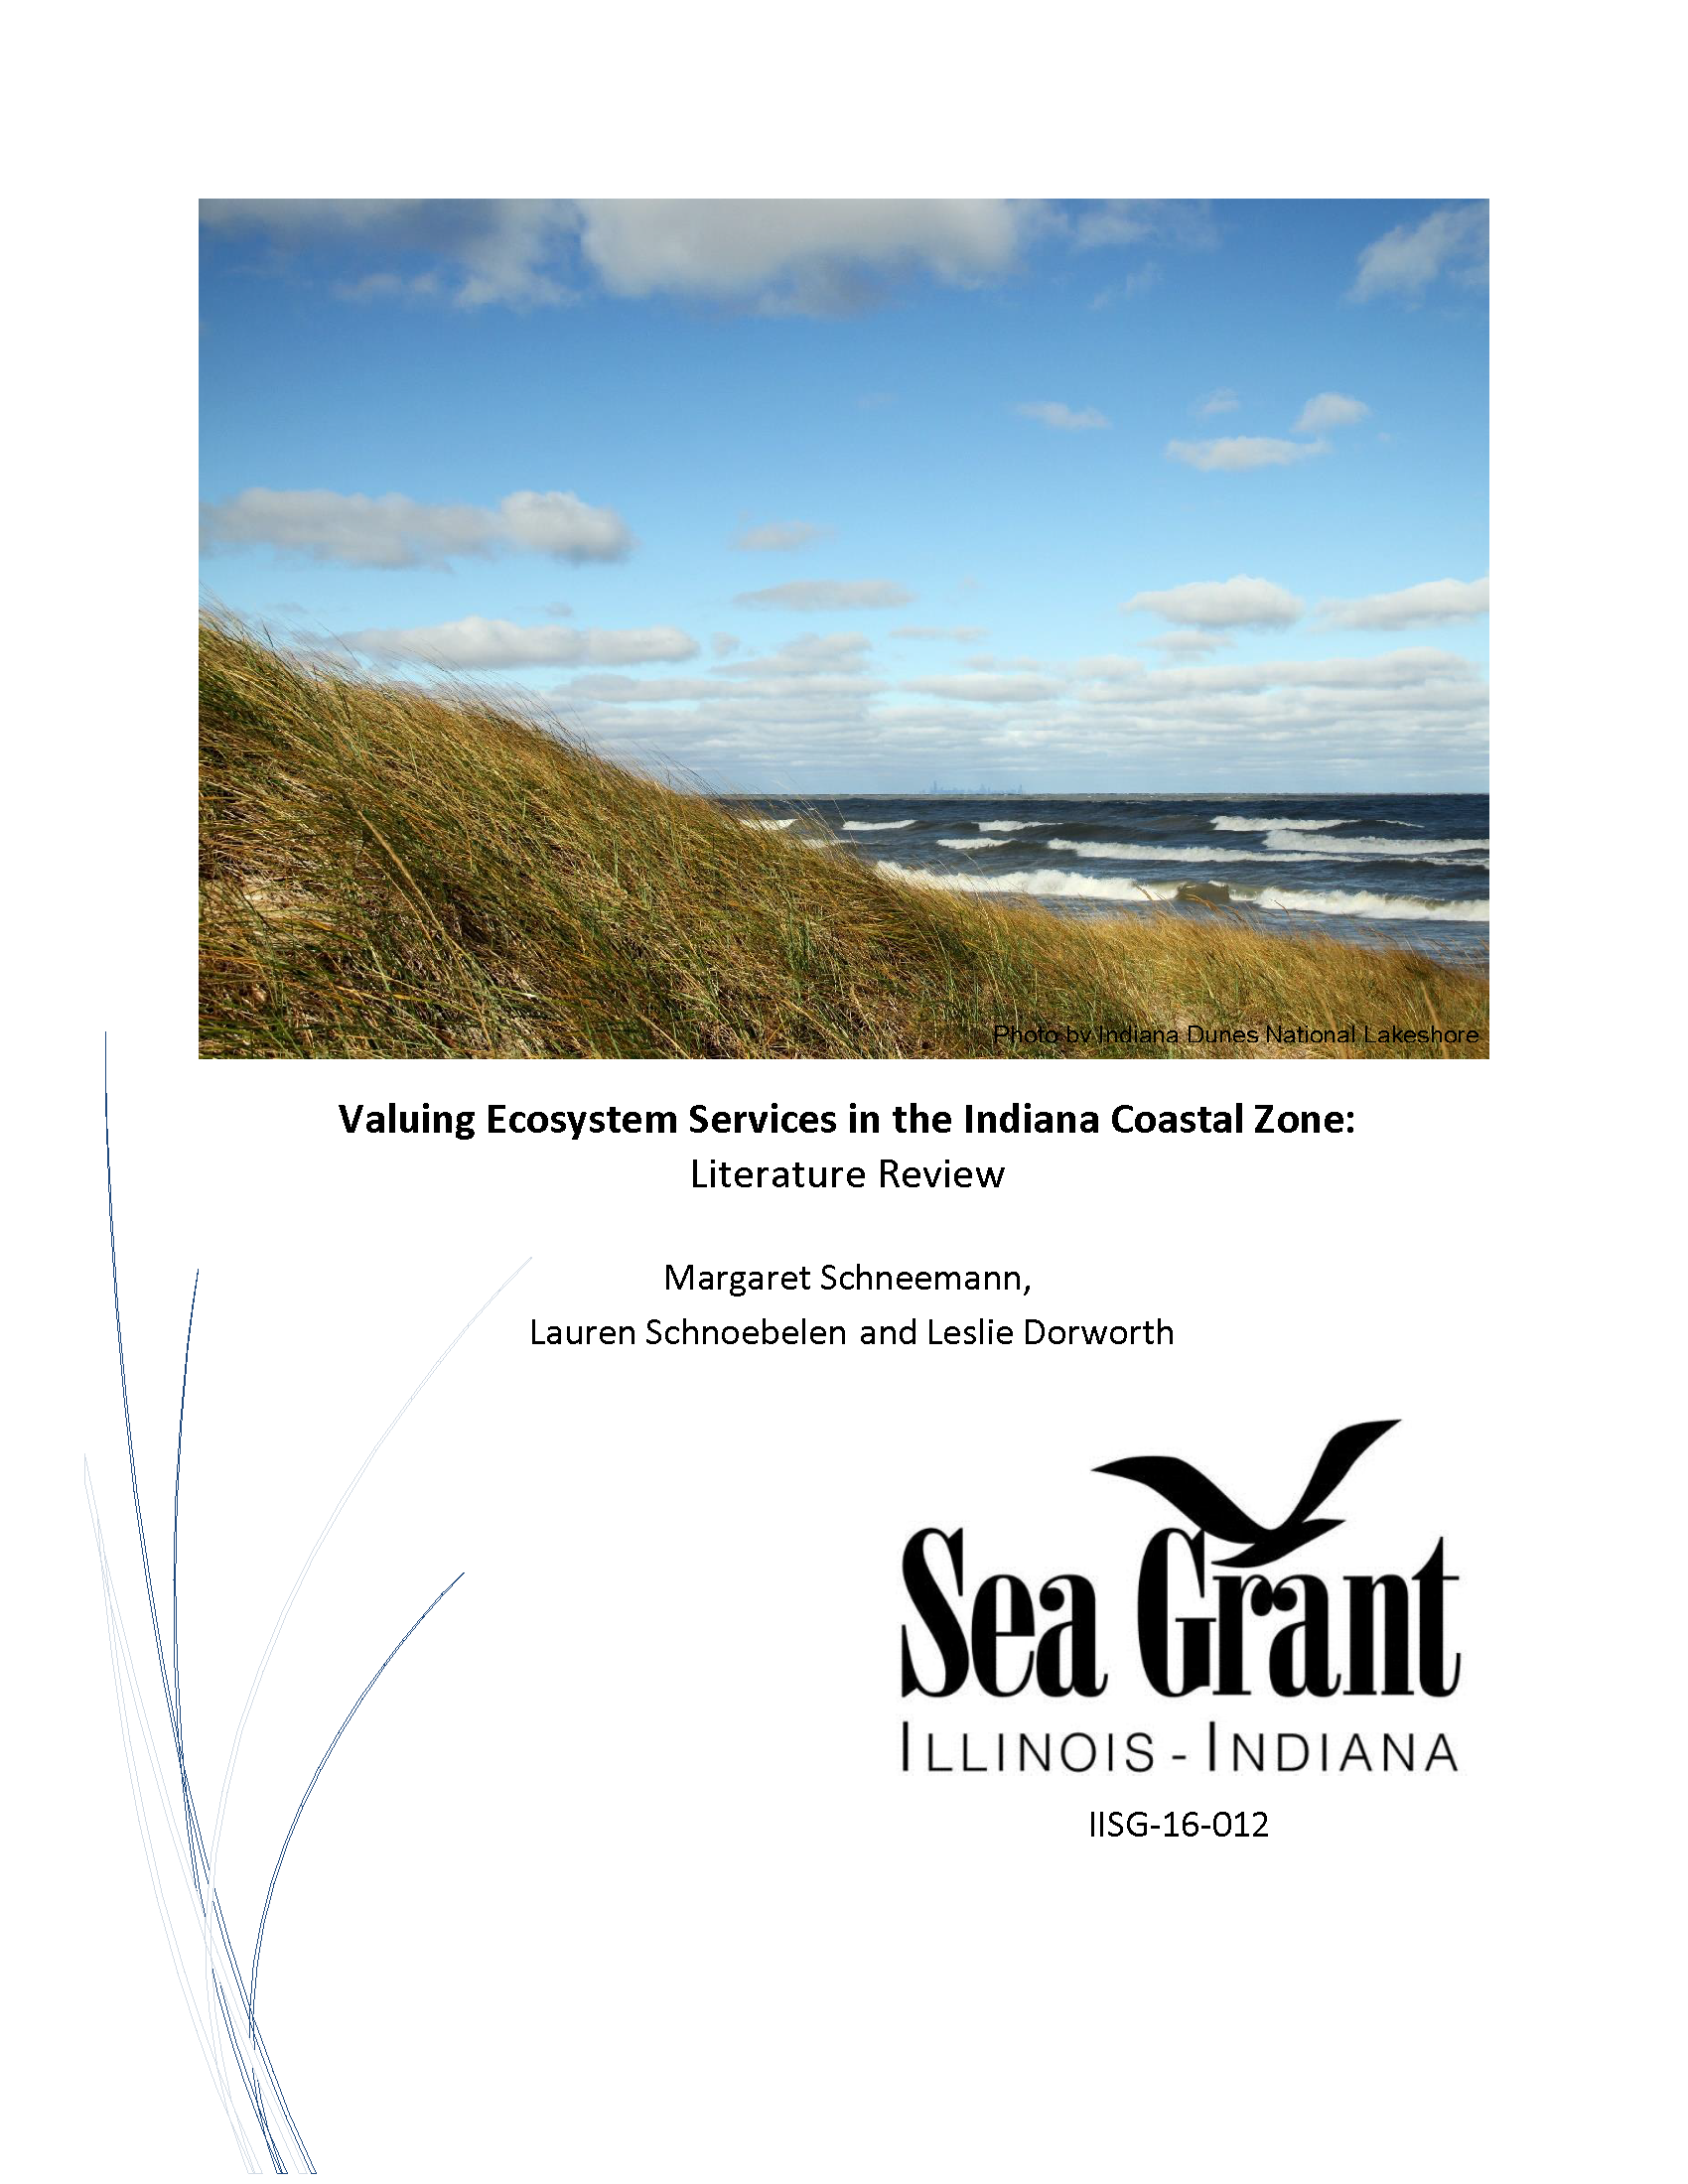 Valuing Ecosystem Services in the Indiana Coastal Zone: Literature Review Thumbnail